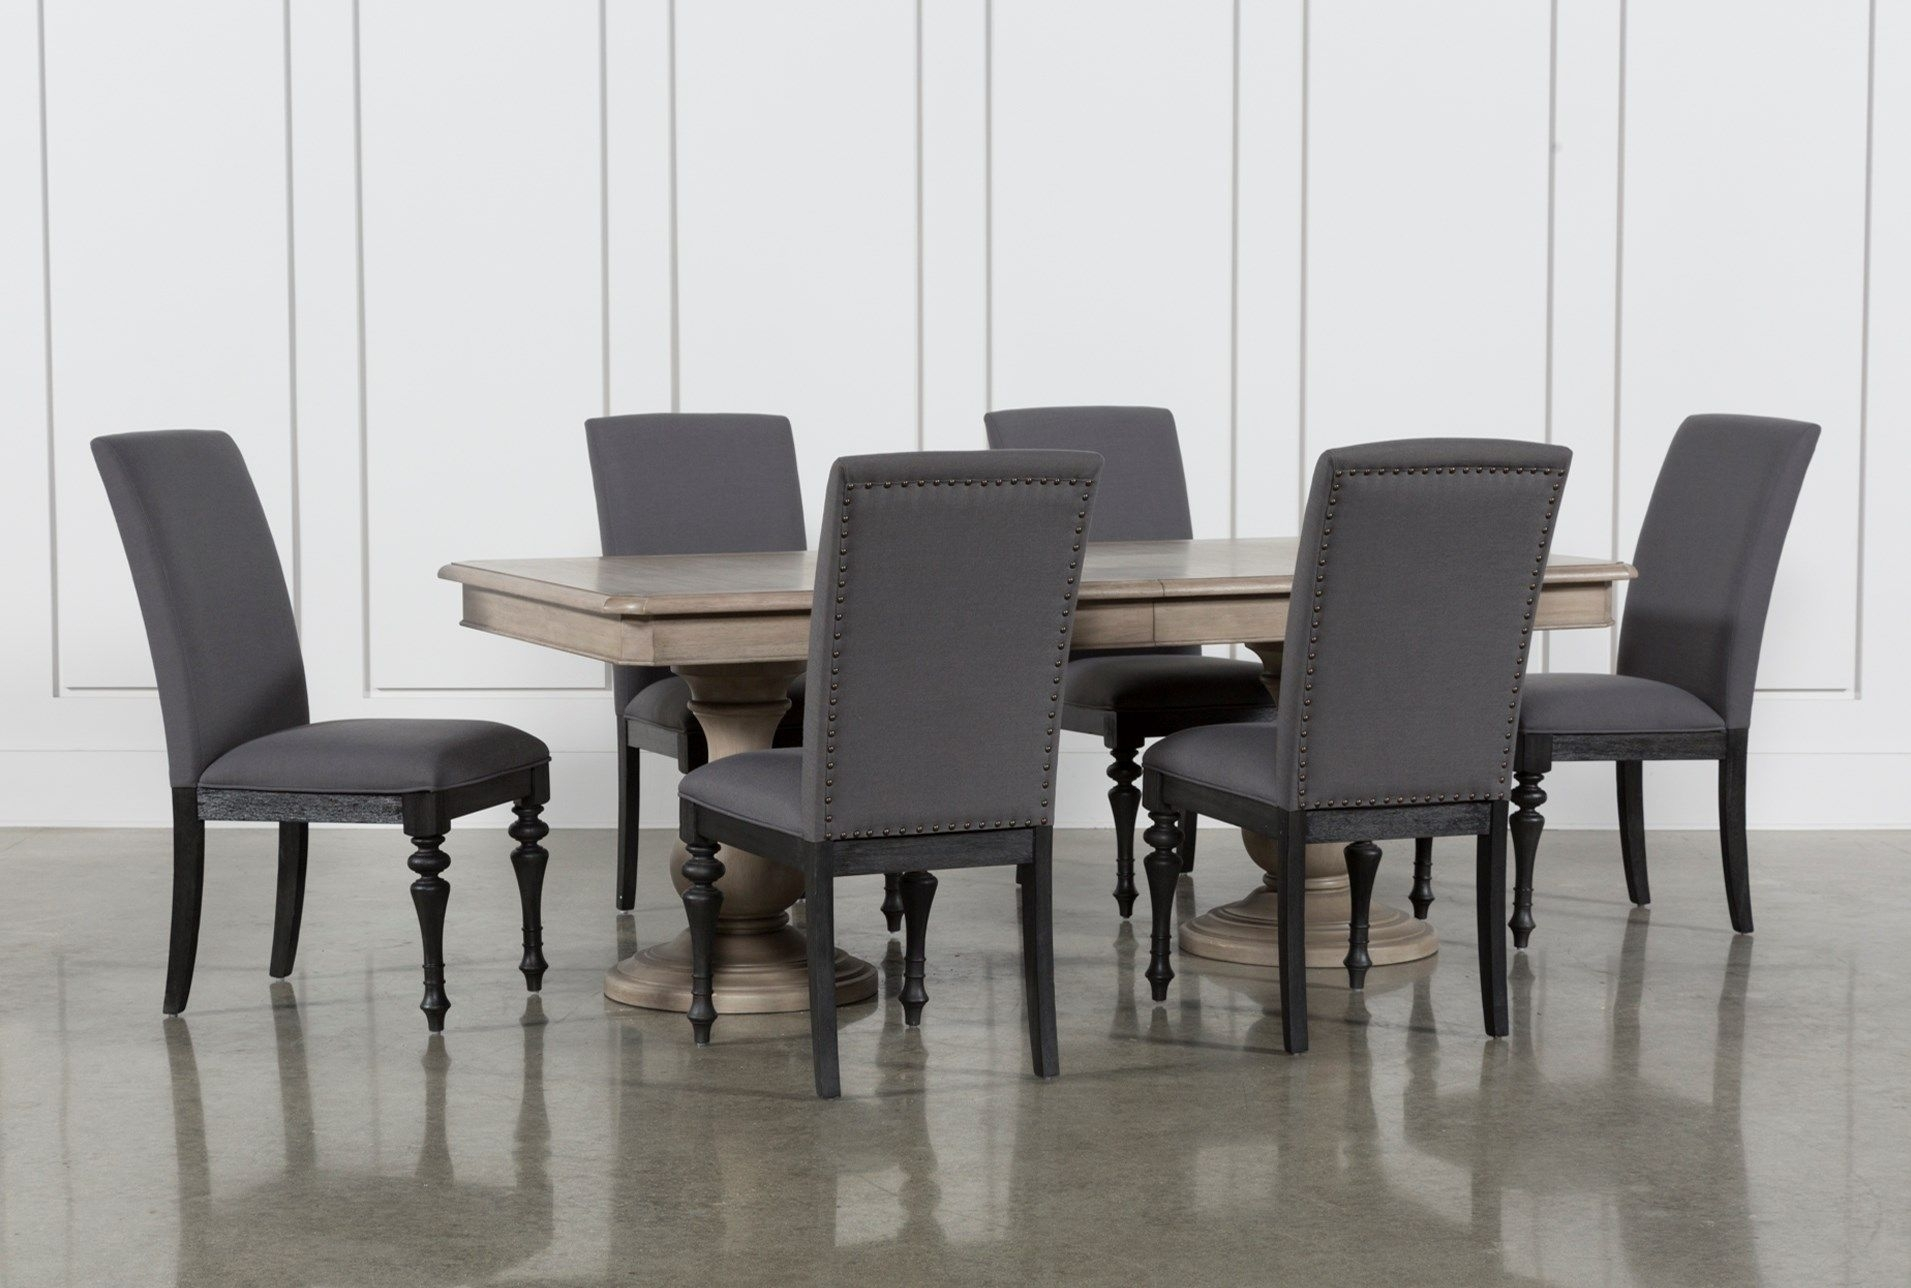 Caira Upholstered Side Chairs Intended For Fashionable Caira 7 Piece Rectangular Dining Set With Upholstered Side Chairs (#4 of 20)